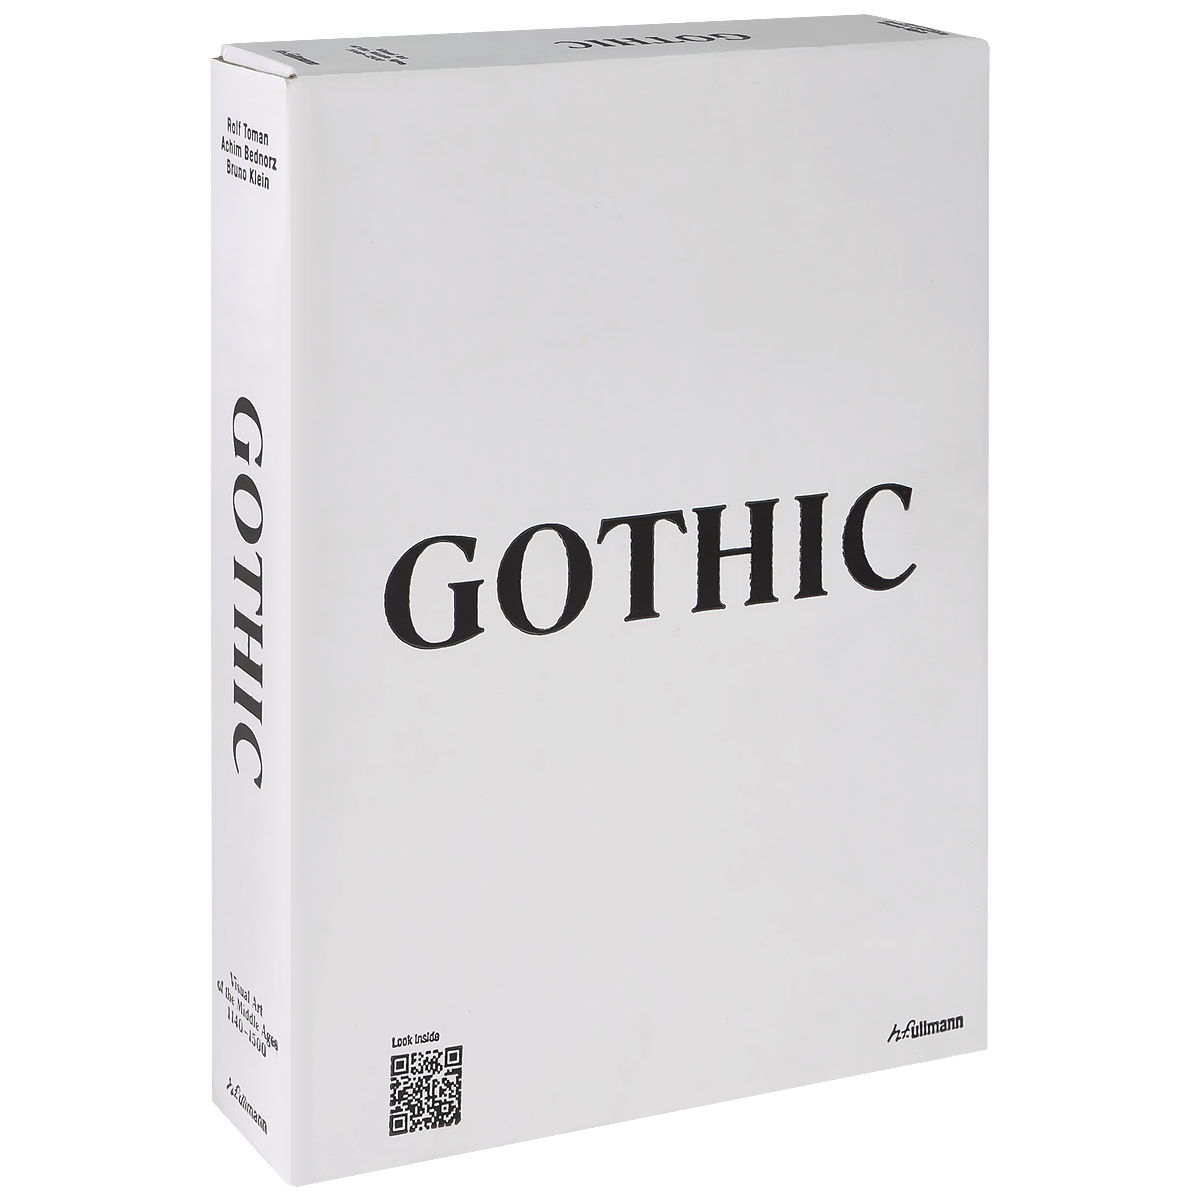 Gothic: Visual Art of the Middle Ages 1150-1500 | Klein Bruno